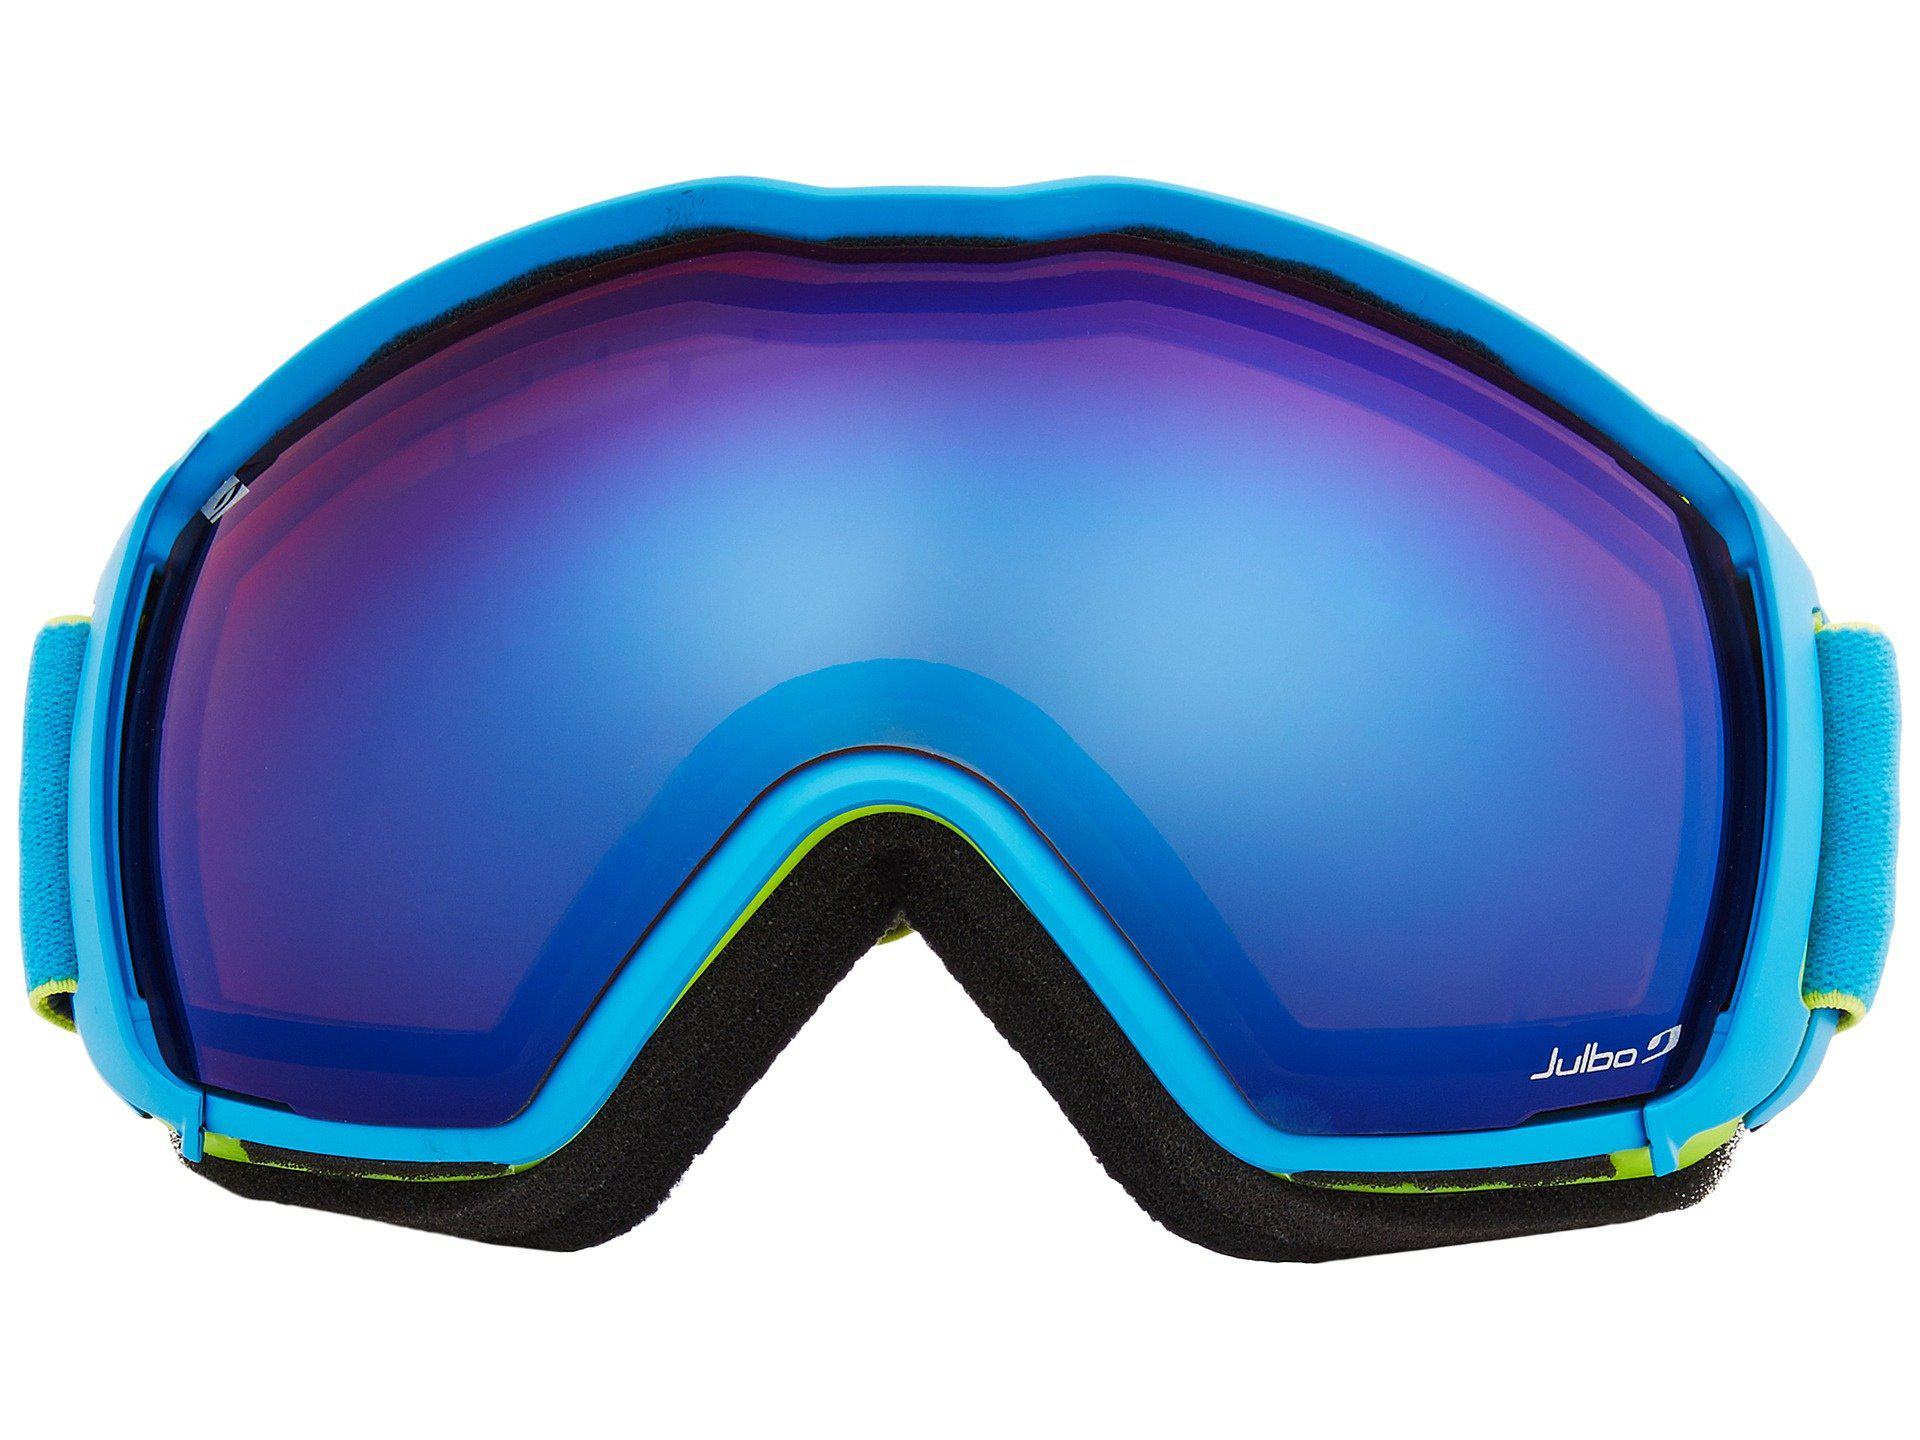 9654dc0024 Julbo Eyewear - Blue Airflux (black black With Spectron 3 Lens) Snow Goggles.  View fullscreen